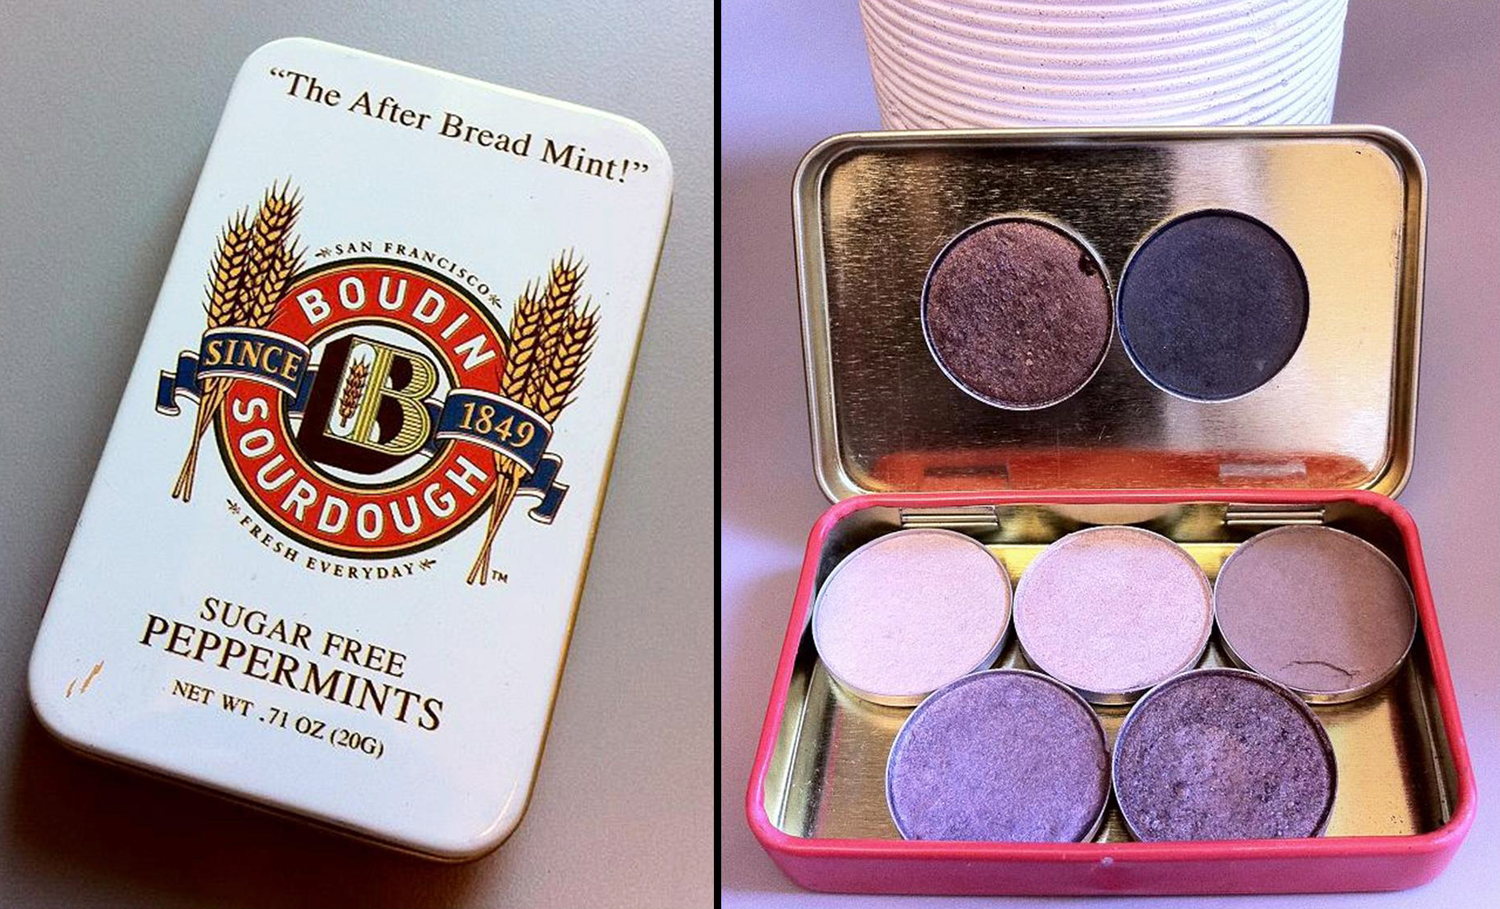 I loooooooove the clam chowder at Boudin Bakery and couldn't resist these mints. The little tin was too cute to throw away and later came in handy.